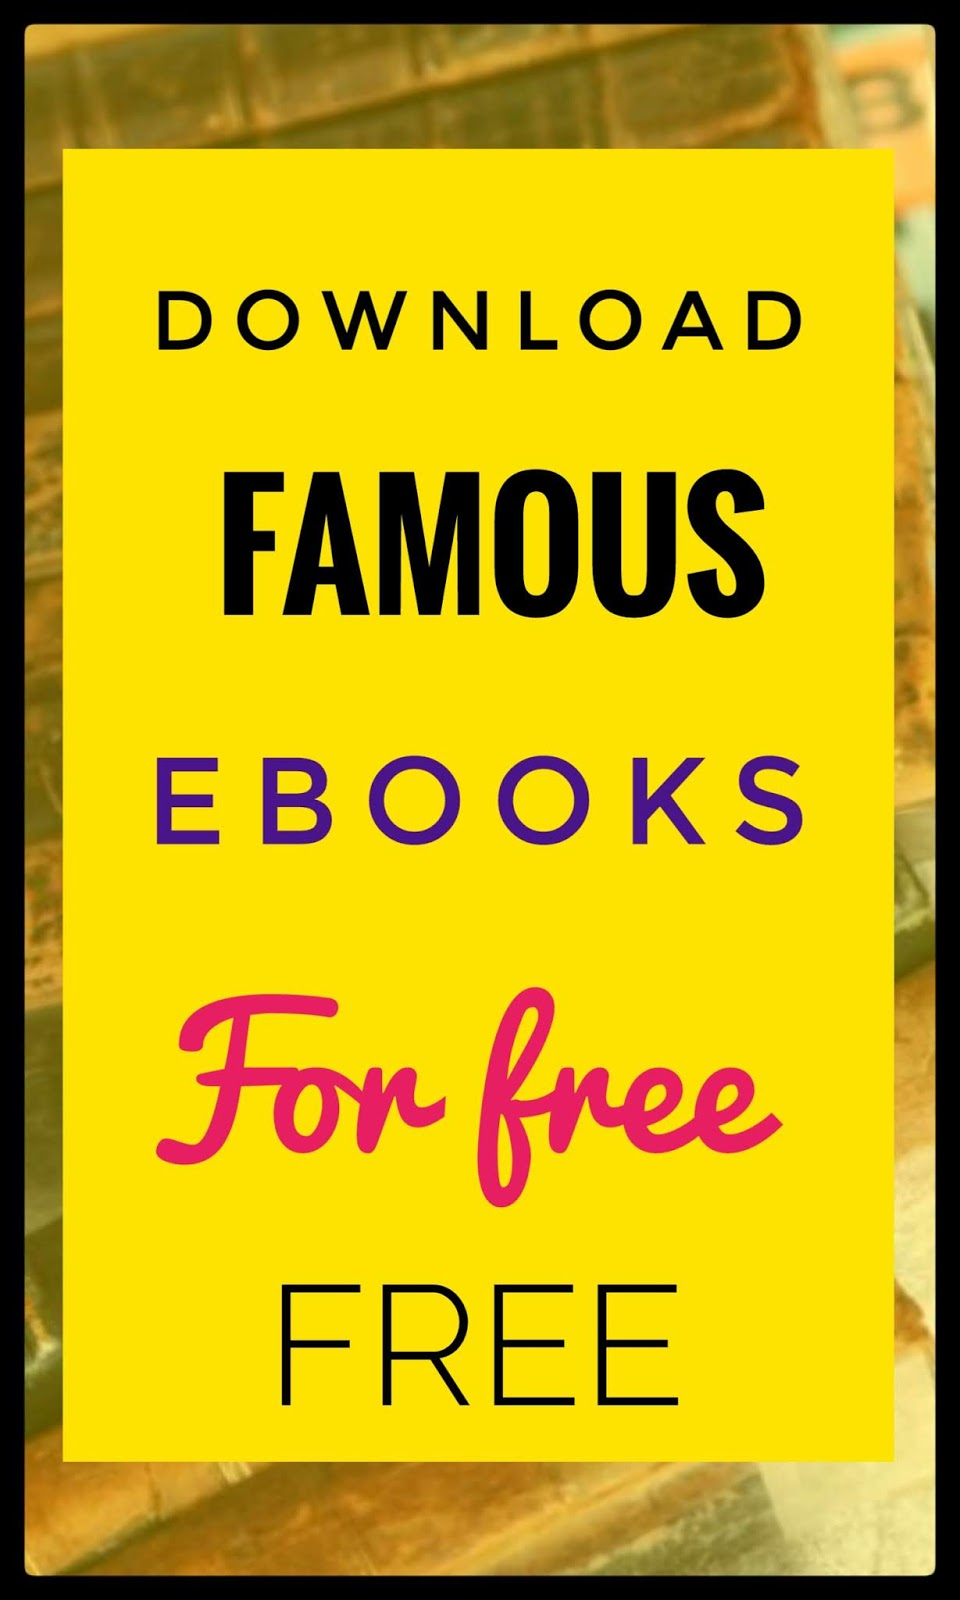 Best ebook to read and download free and paid ebooks